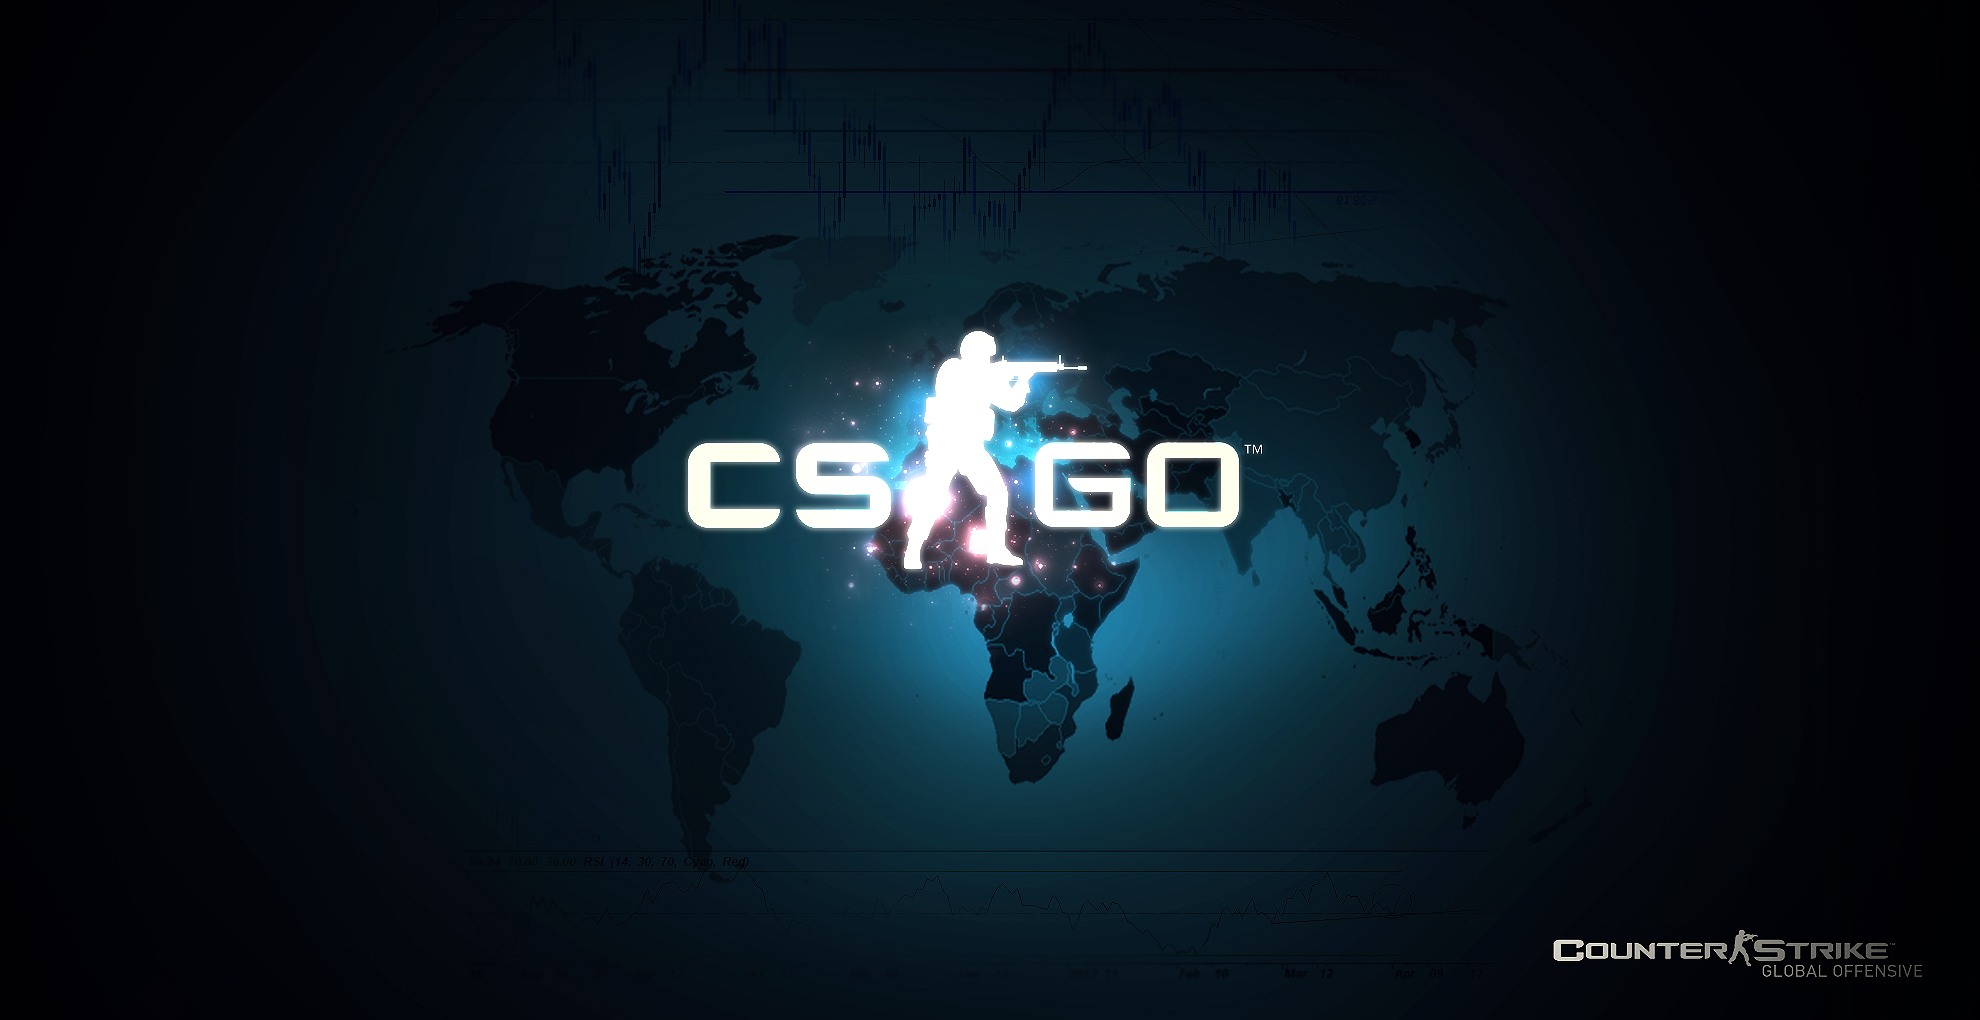 Fondos de pantalla Counter Strike: Global Offensive CSGO